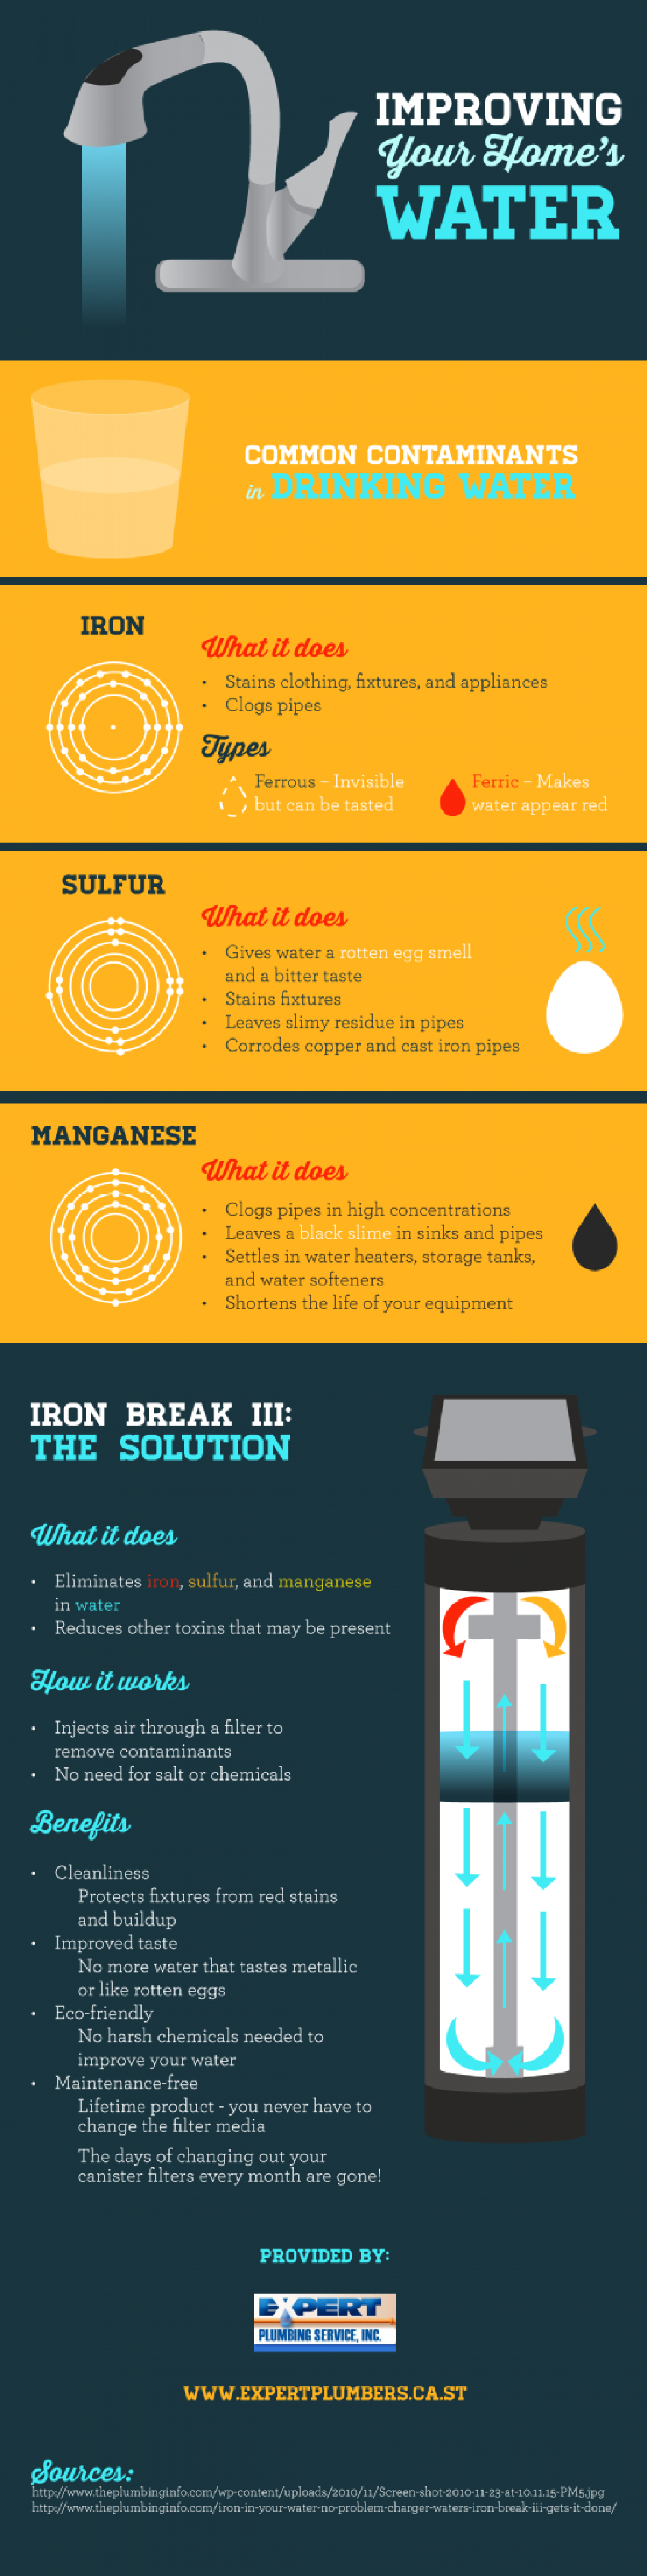 Improving Your Home's Water Infographic